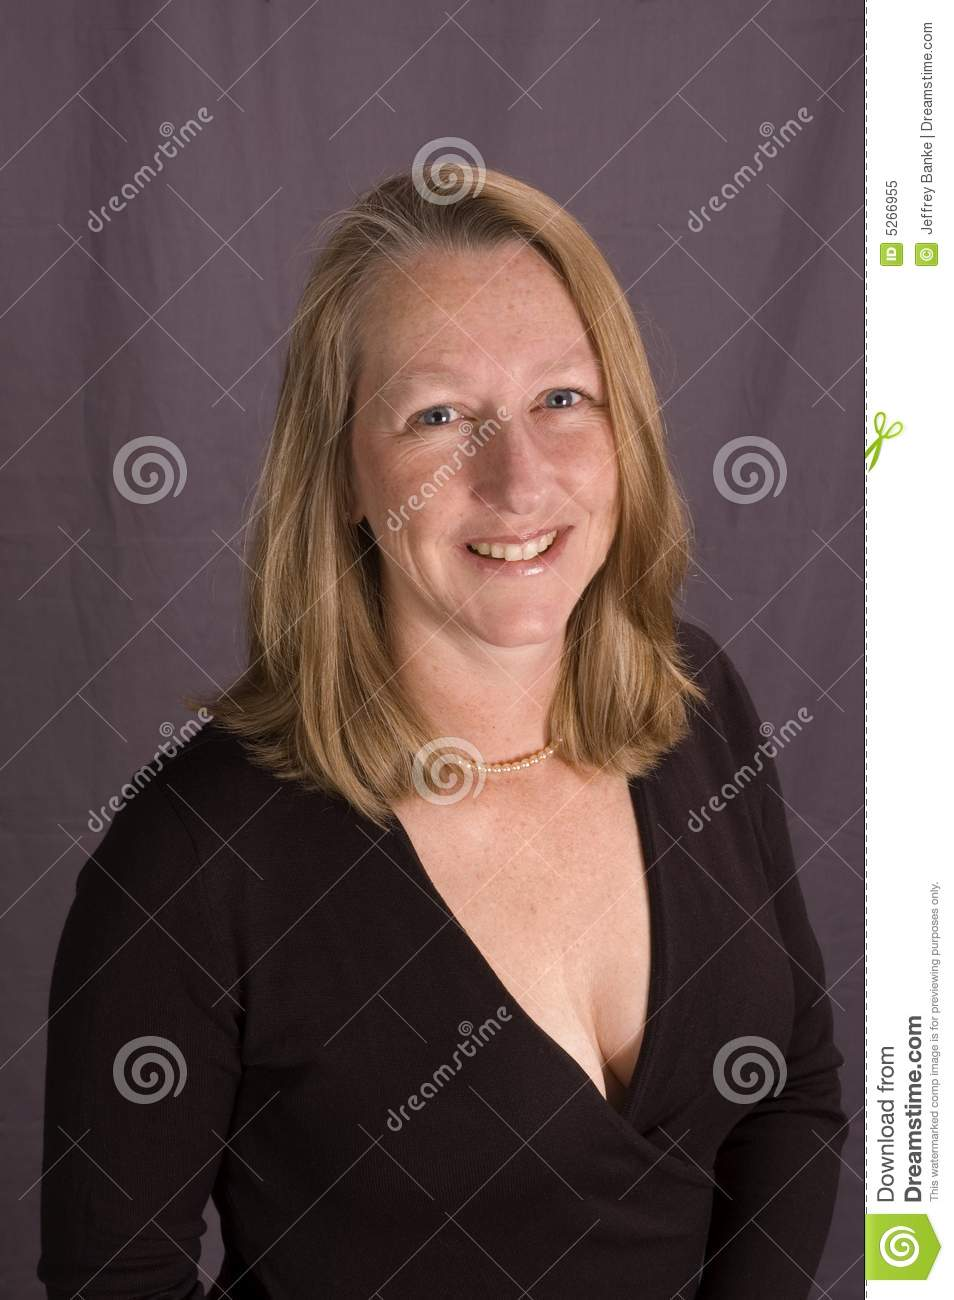 Dating sites for middle aged woman